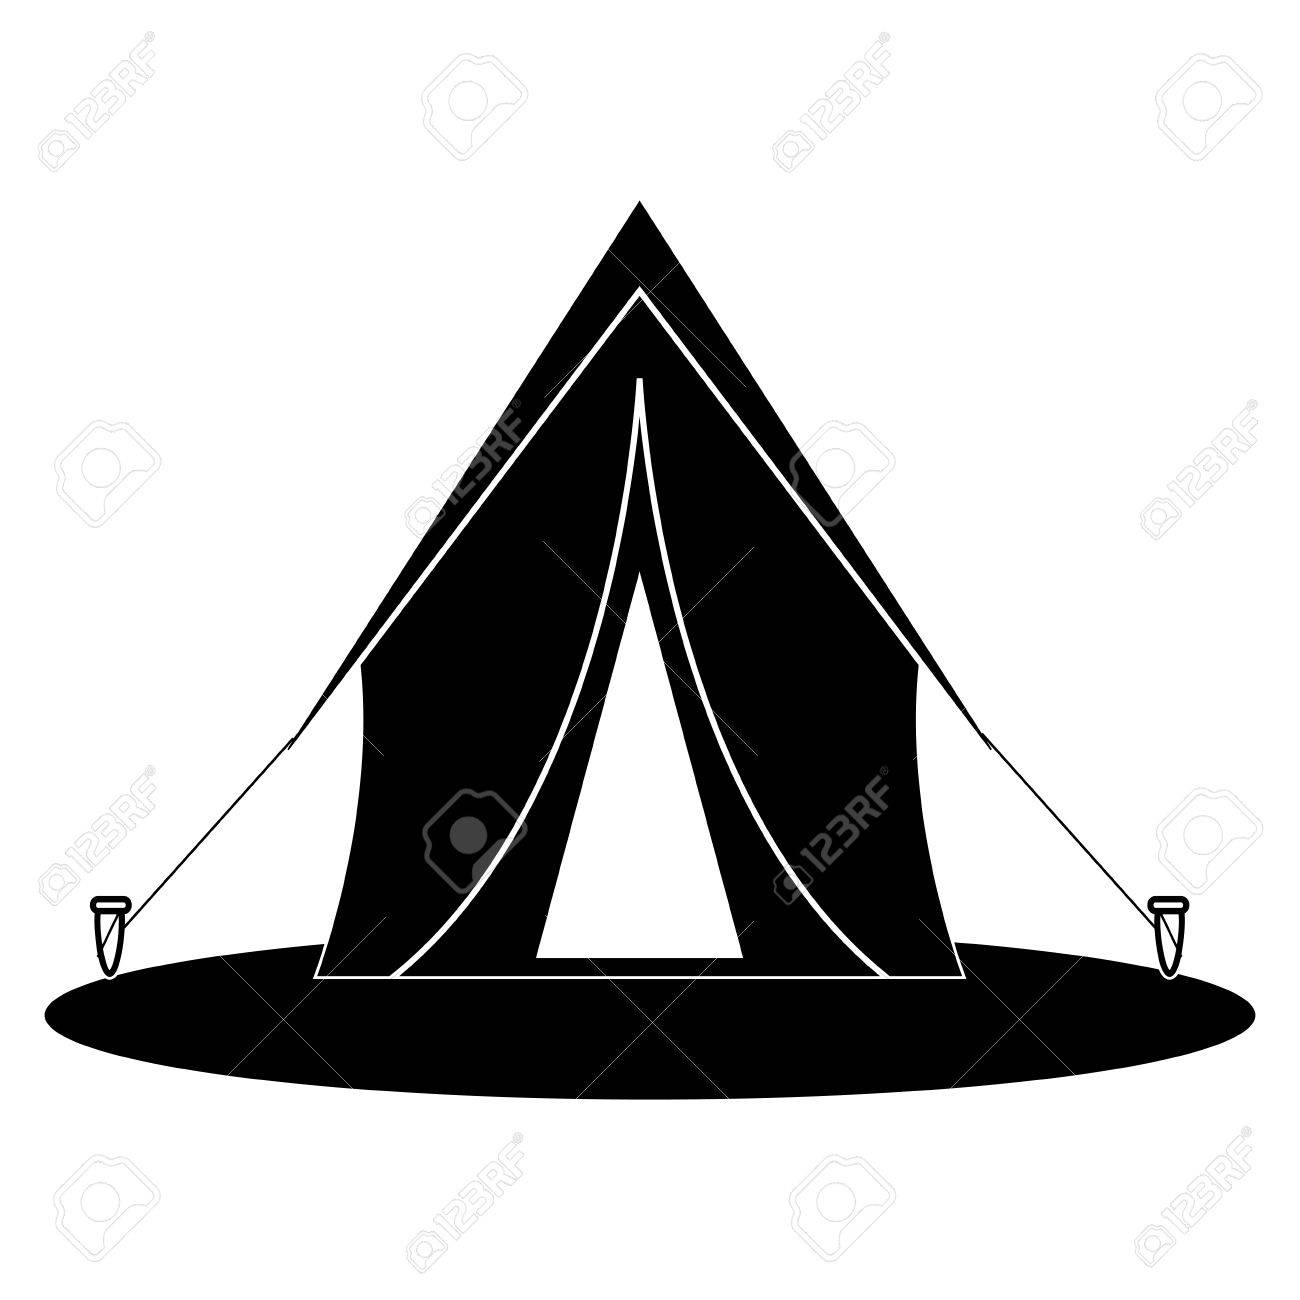 Silhouette Tent Equipment Camping Activities Vector Illustration Stock